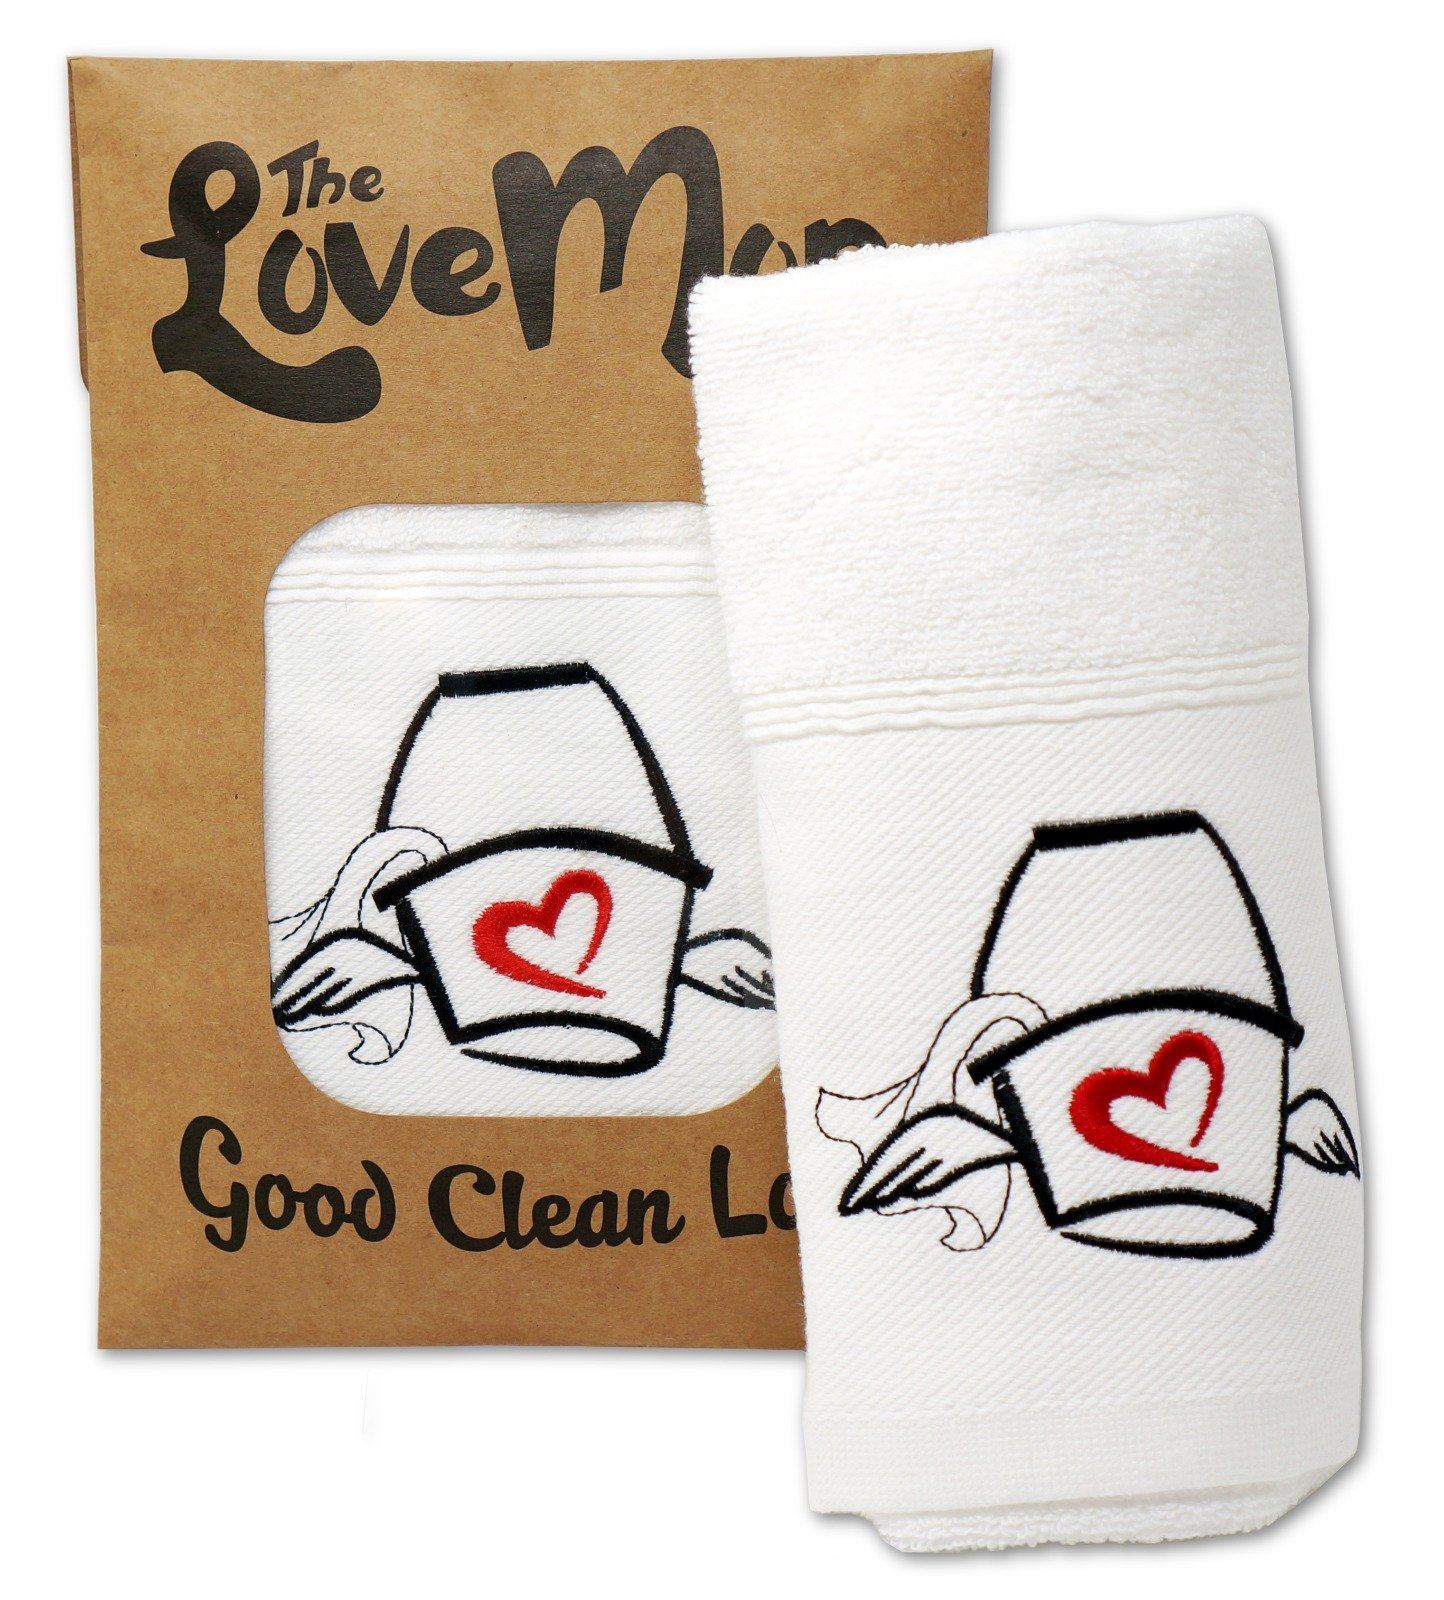 Love Mop, Premium Cotton Sex Towel, Bachelorette Gift, Wedding Shower, Couples, Bridal, Lingerie Party, Anniversary, Adult, Naughty, Sexy, for Her, for Him, Valentines, Wife, Husband, Sexual Wellness